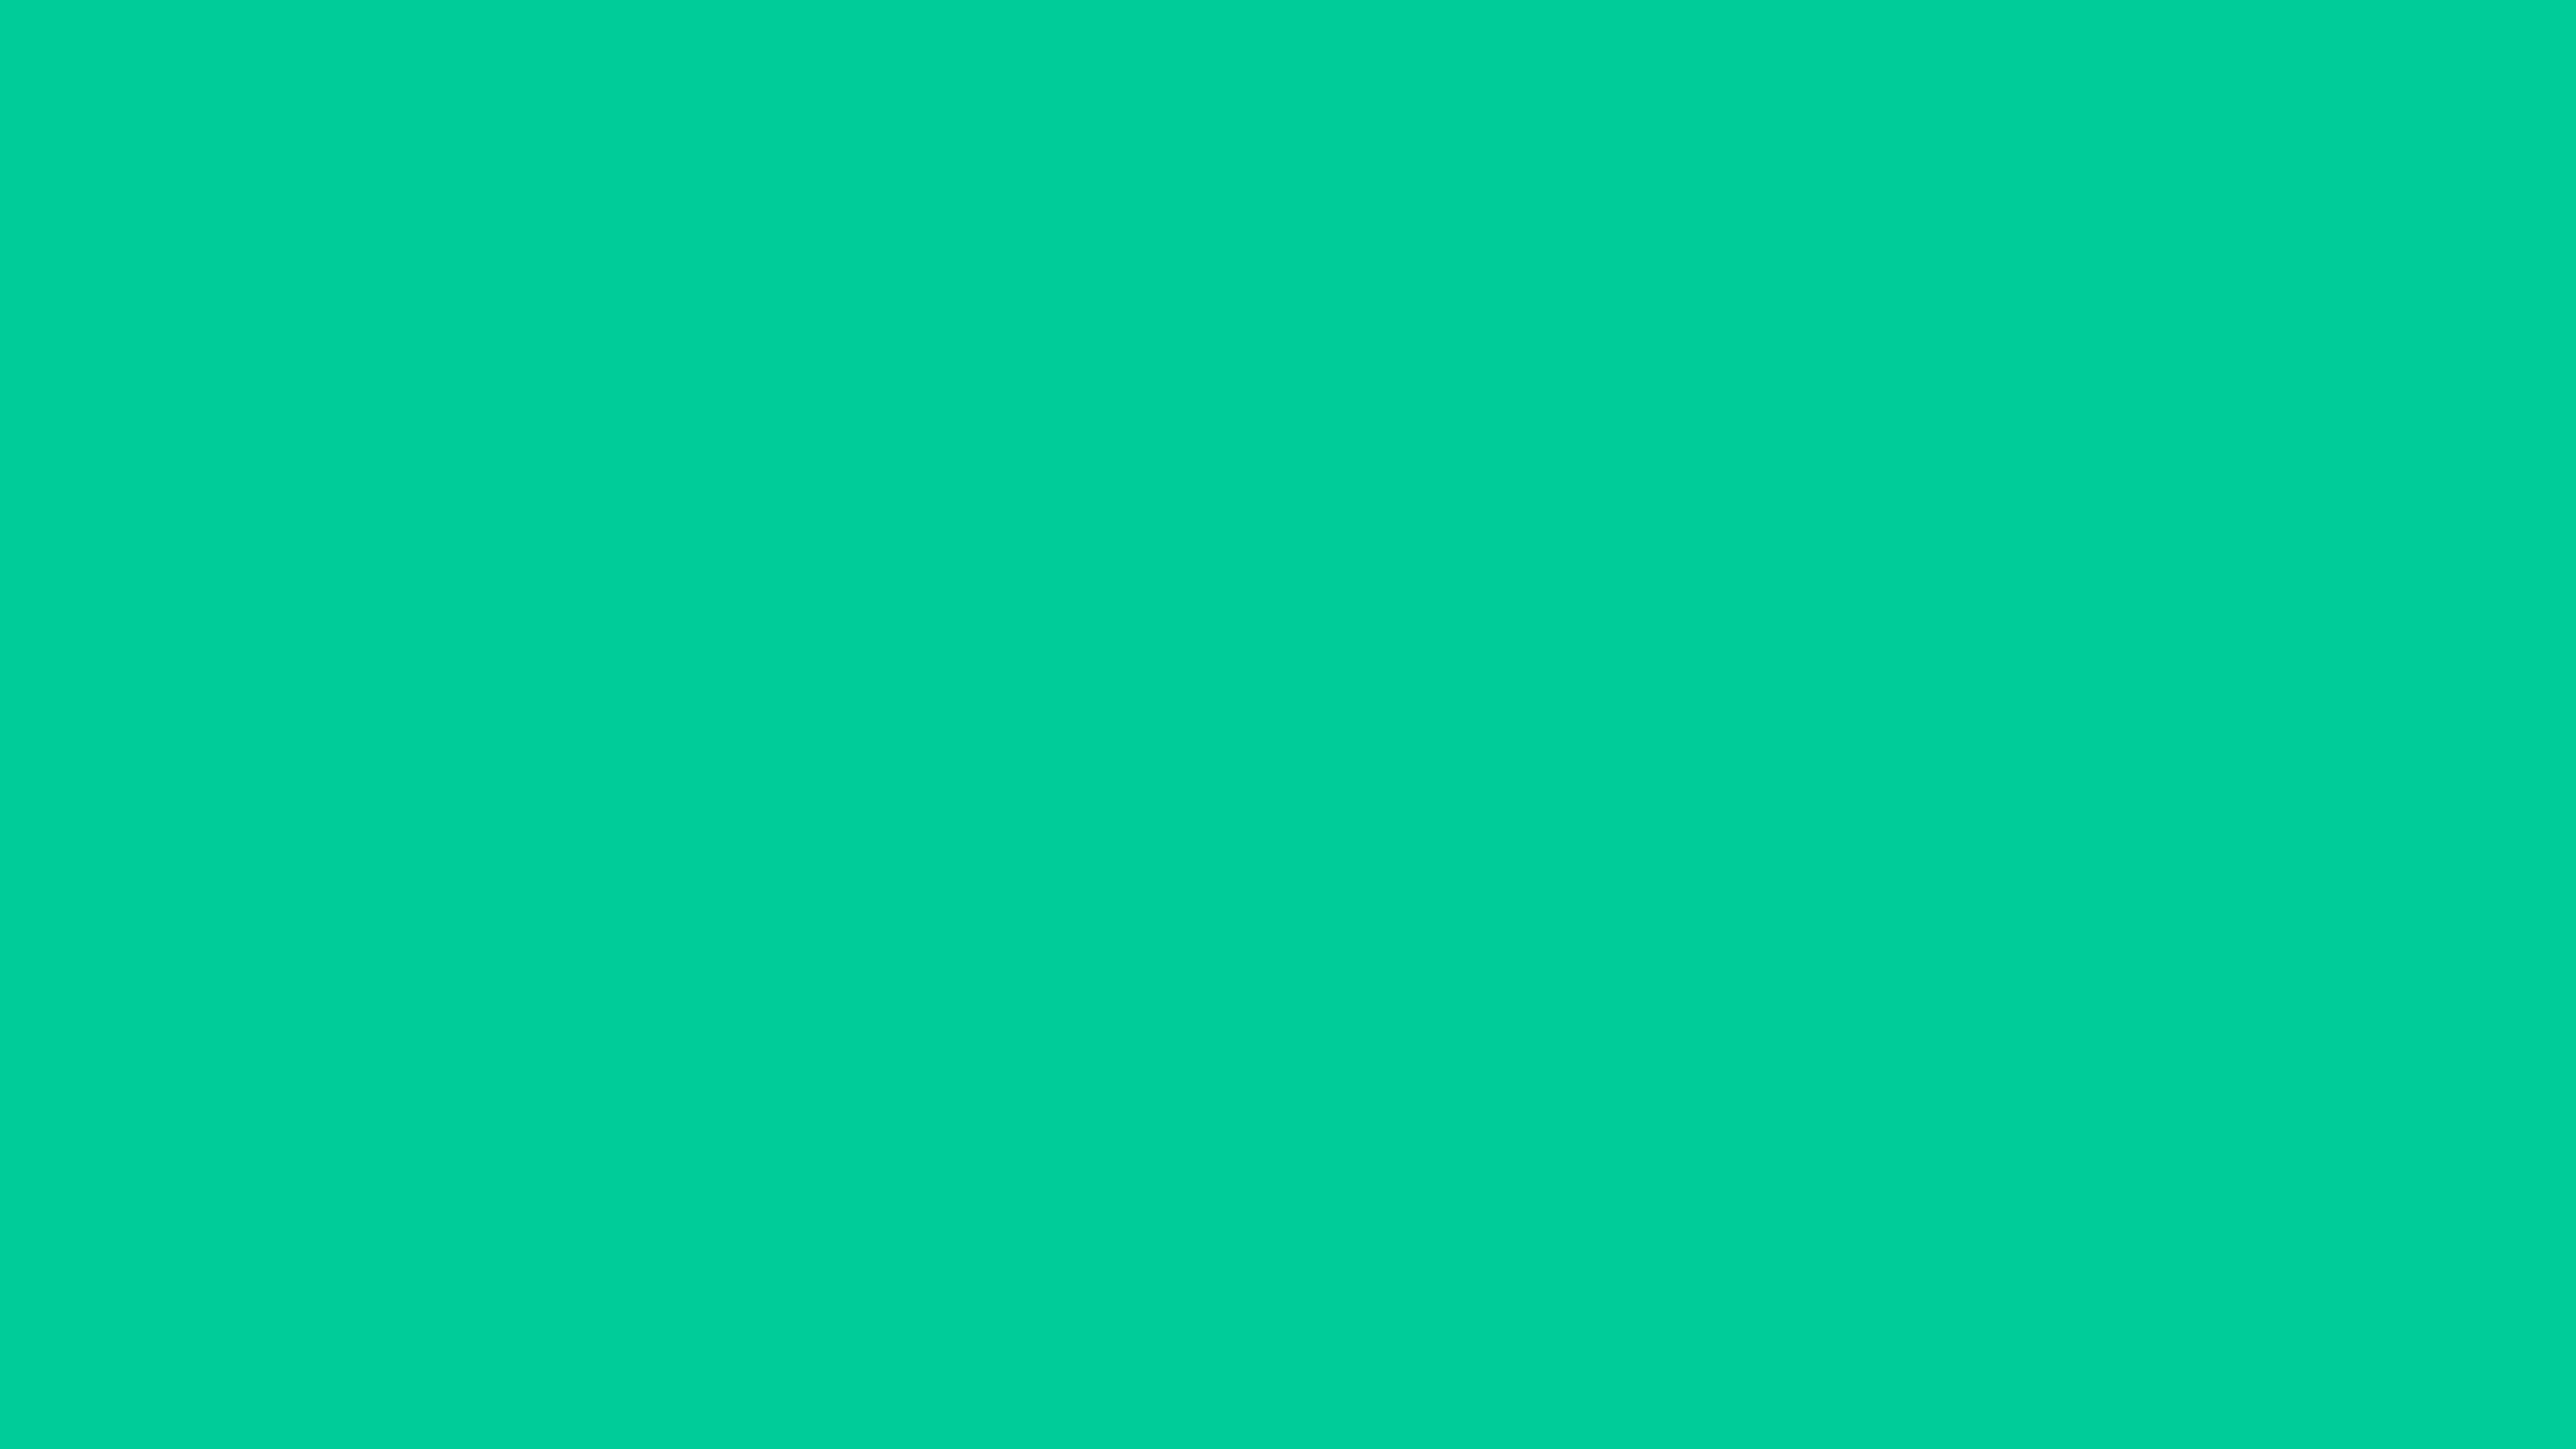 7680x4320 Caribbean Green Solid Color Background